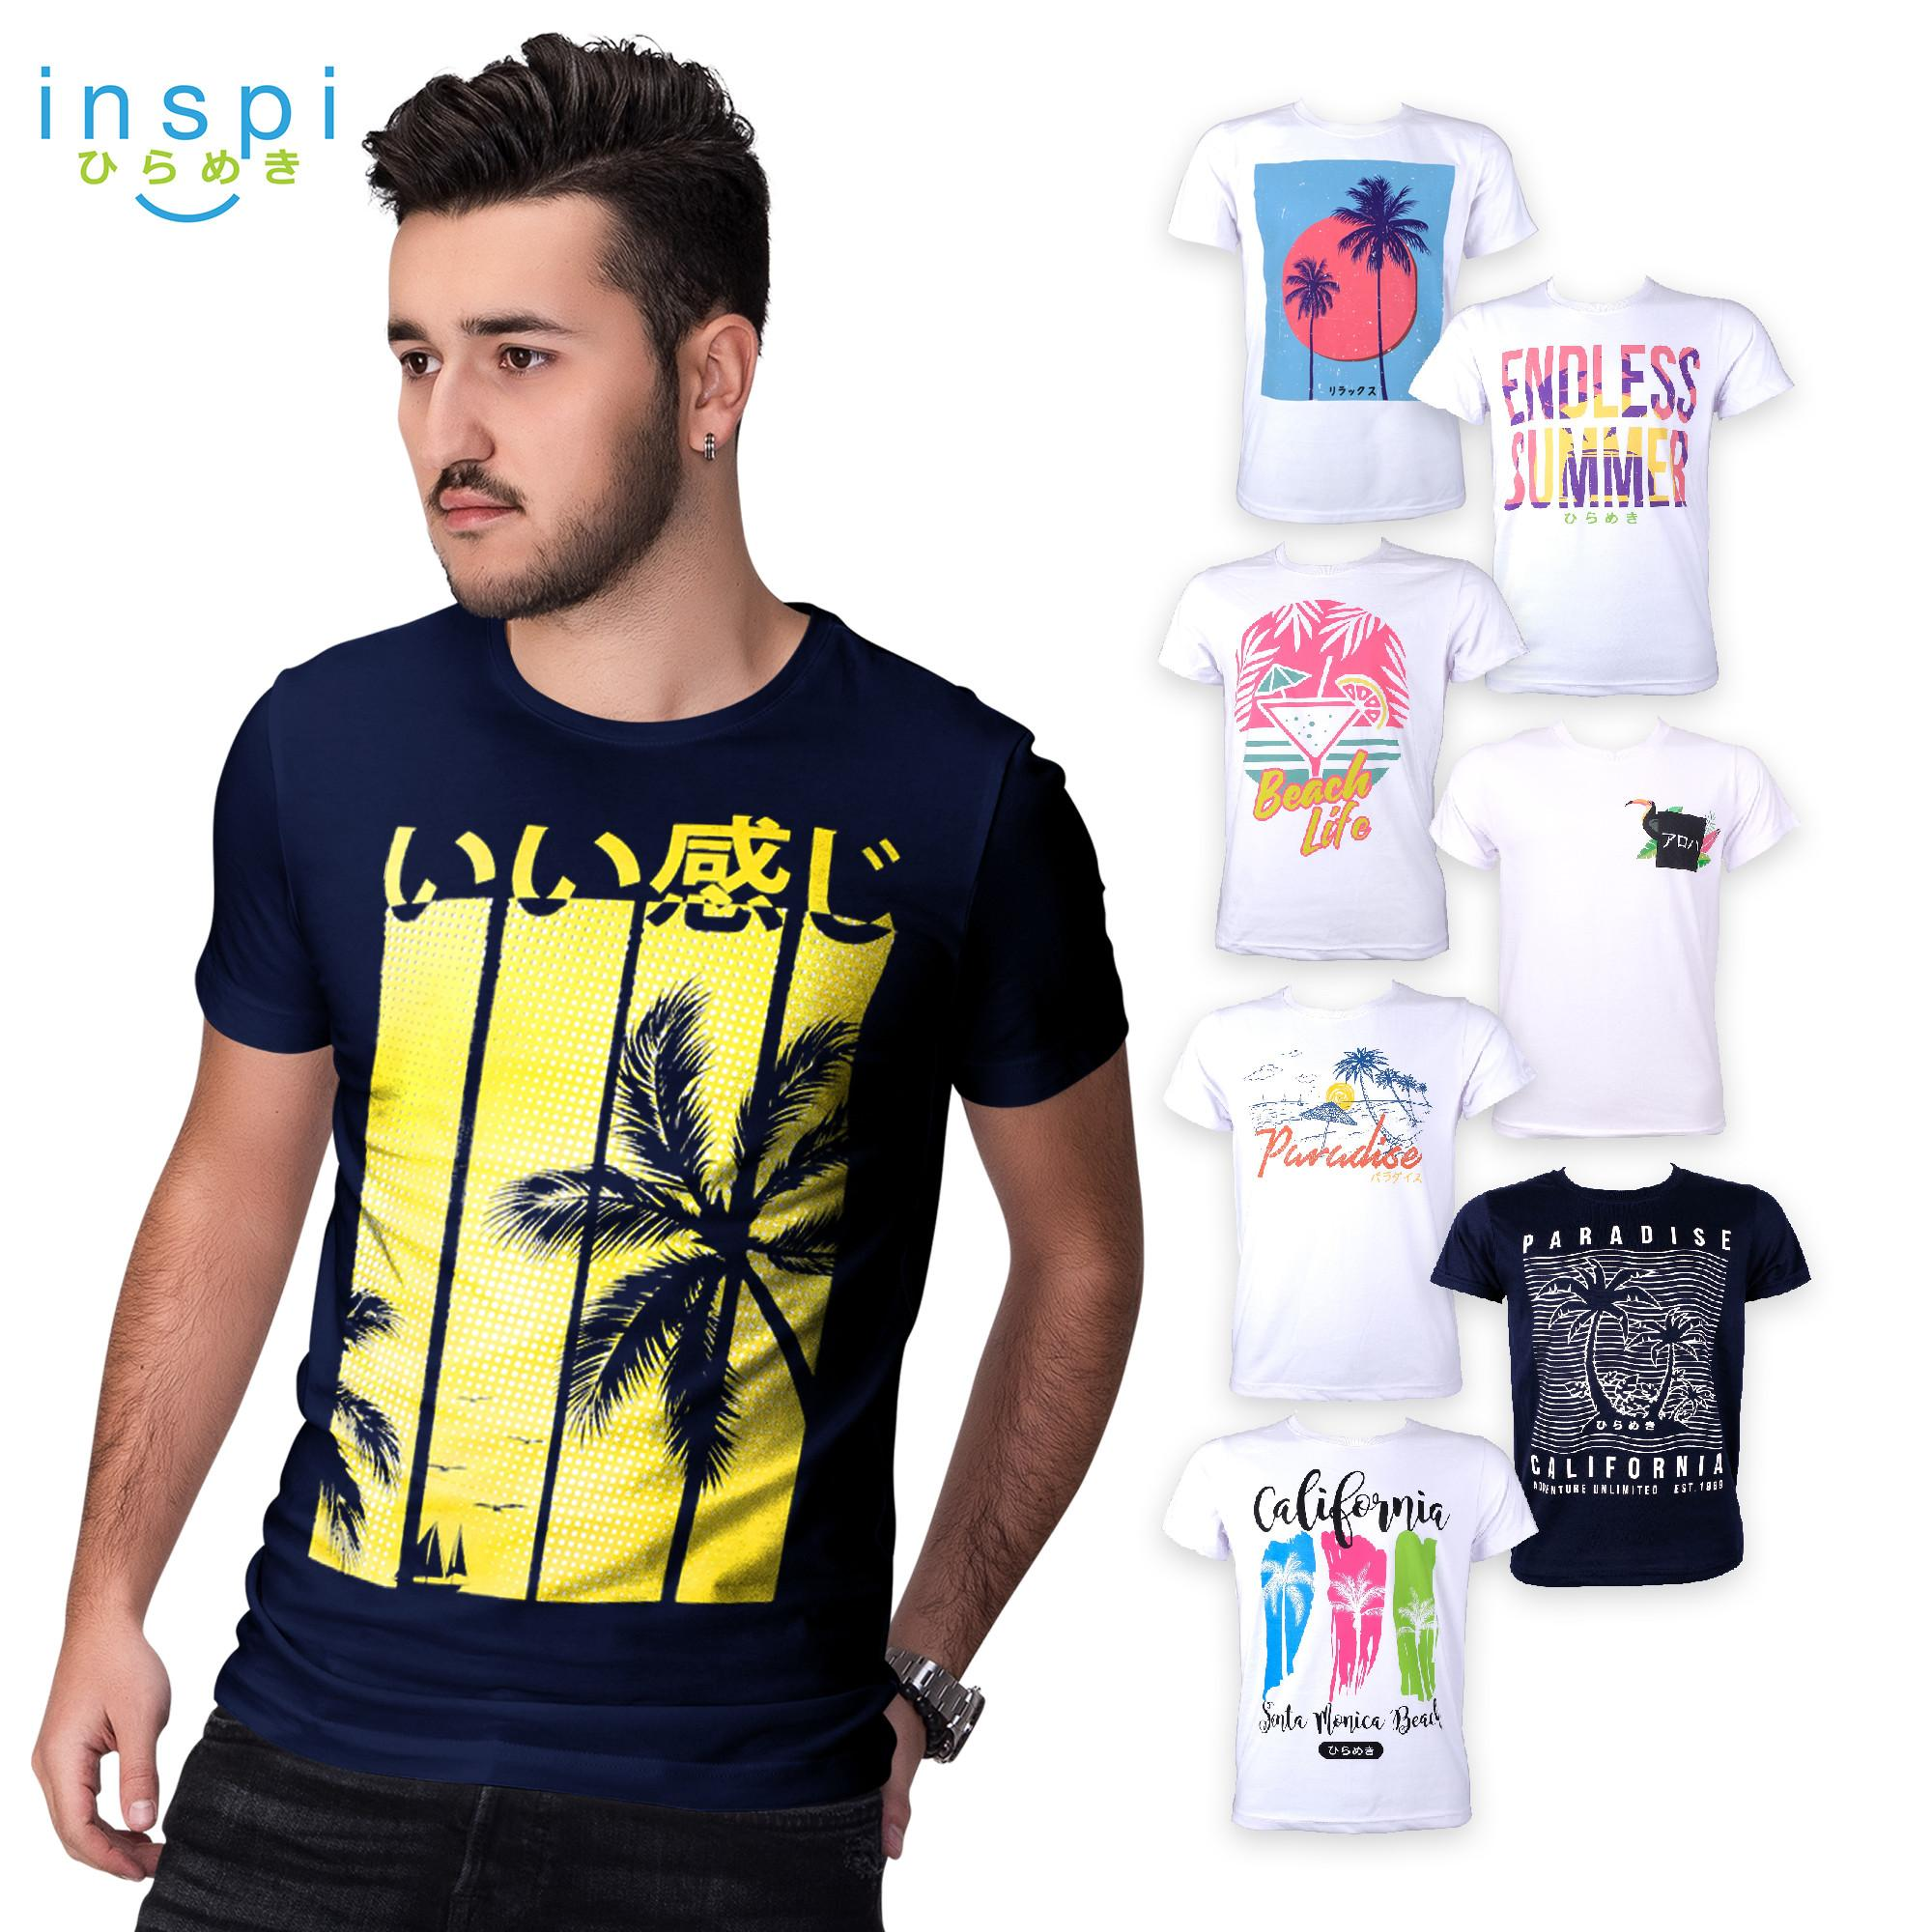 cf8e74c194e INSPI Tees Summer Collection tshirt printed graphic tee Mens t shirt shirts  for men tshirts sale